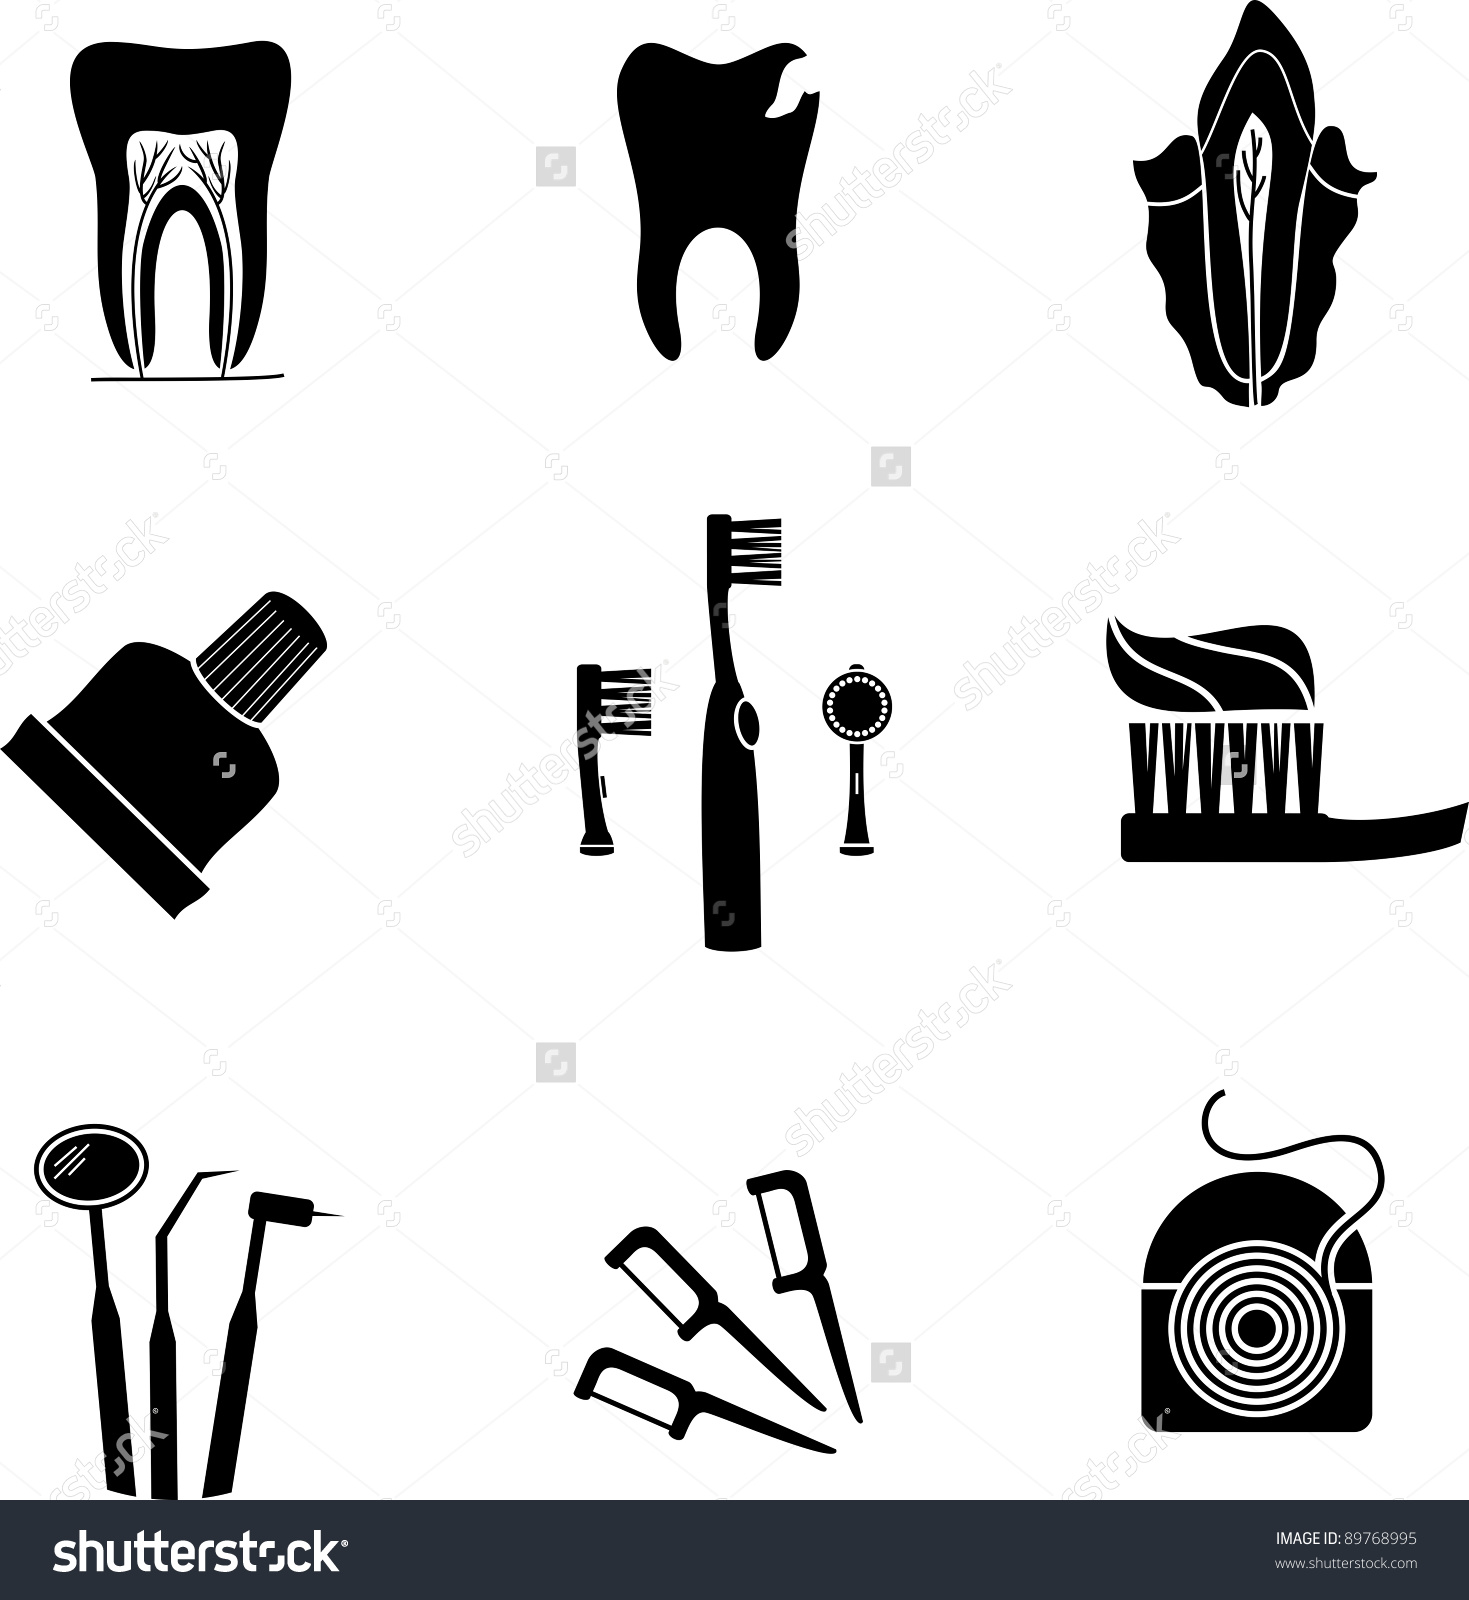 Isolated Silhouette Dental Icons Stock Vector 89768995.